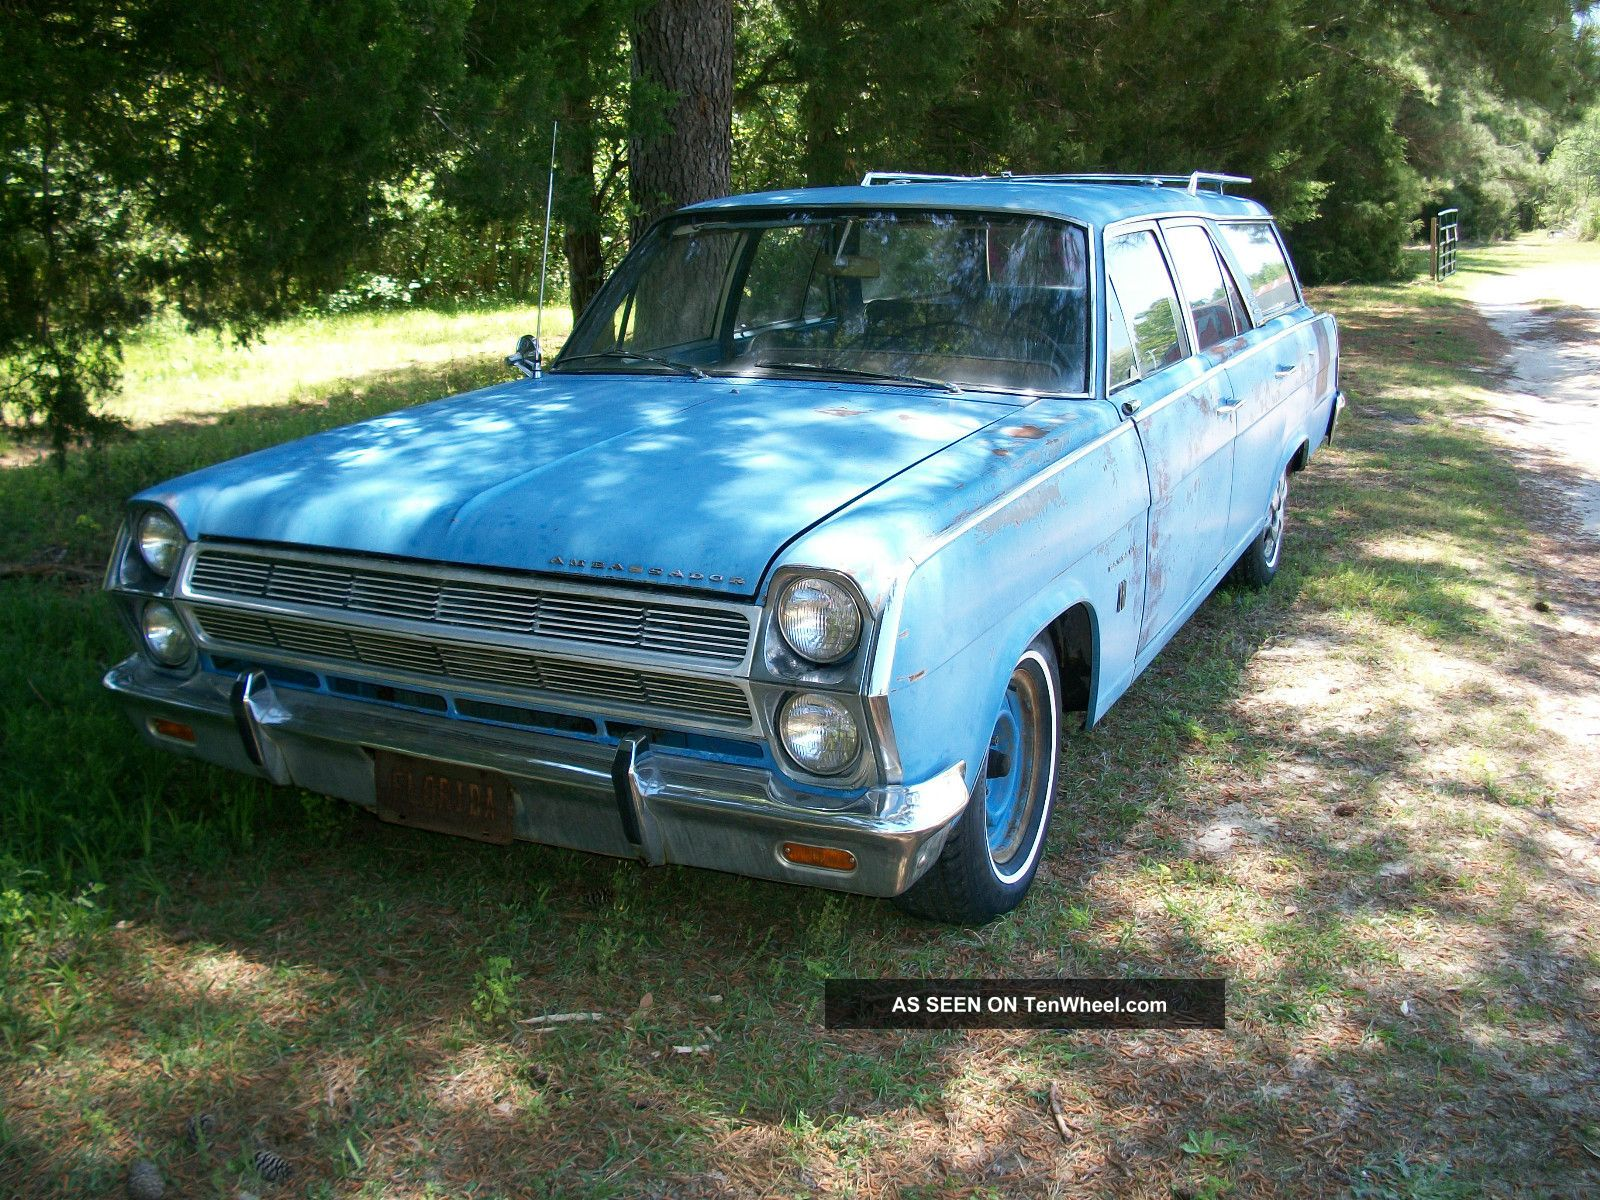 1965 Rambler Ambassador Cross Country Station Wagon By Amc American Motors Corp AMC photo